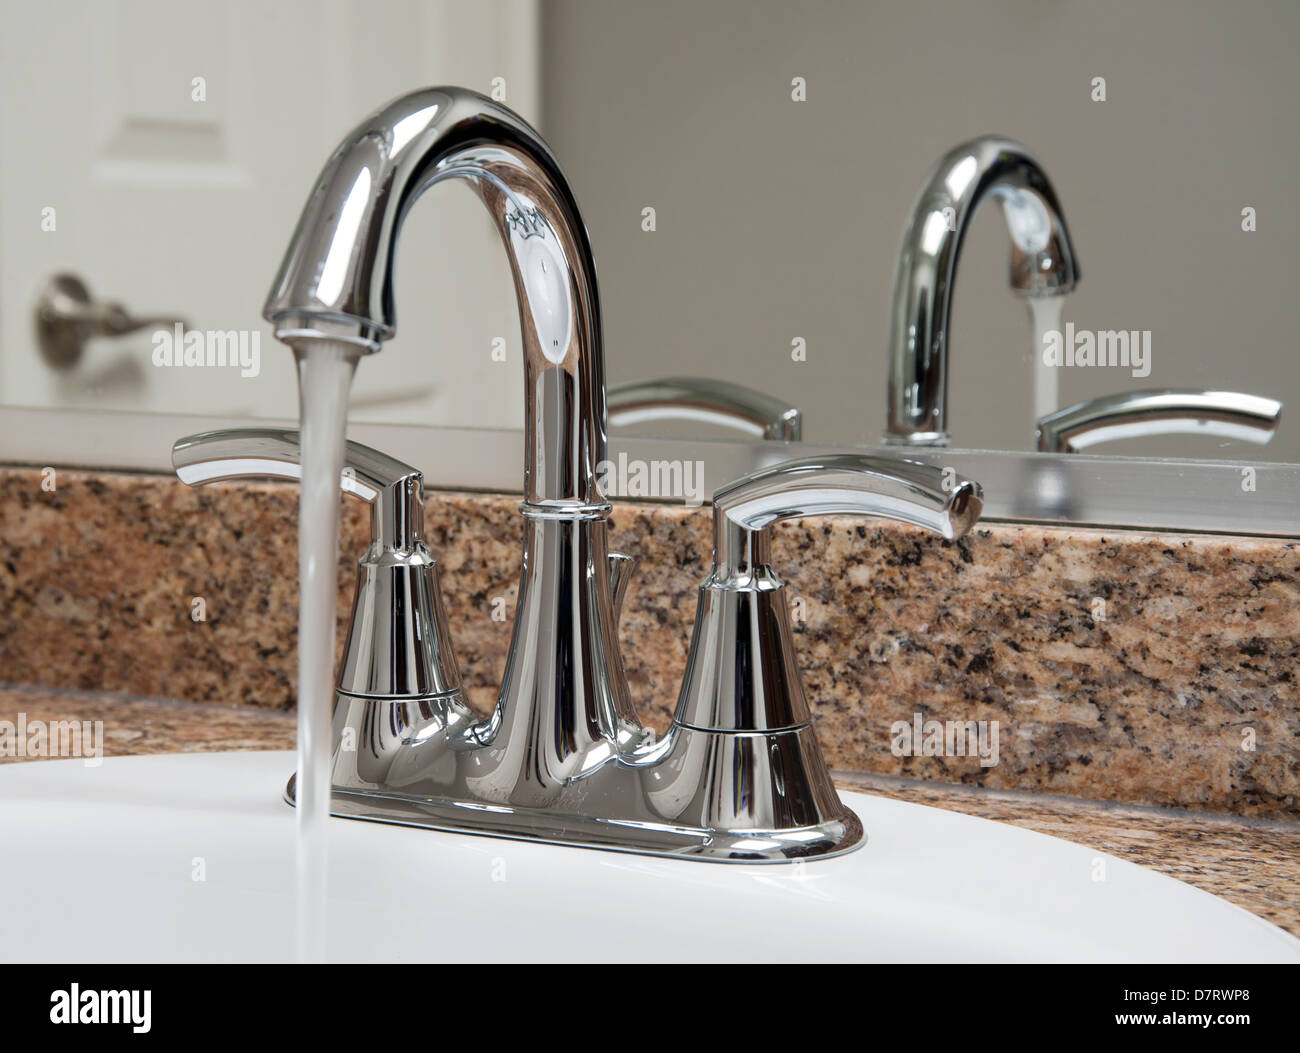 Bathroom taps with water running into sink - Stock Image